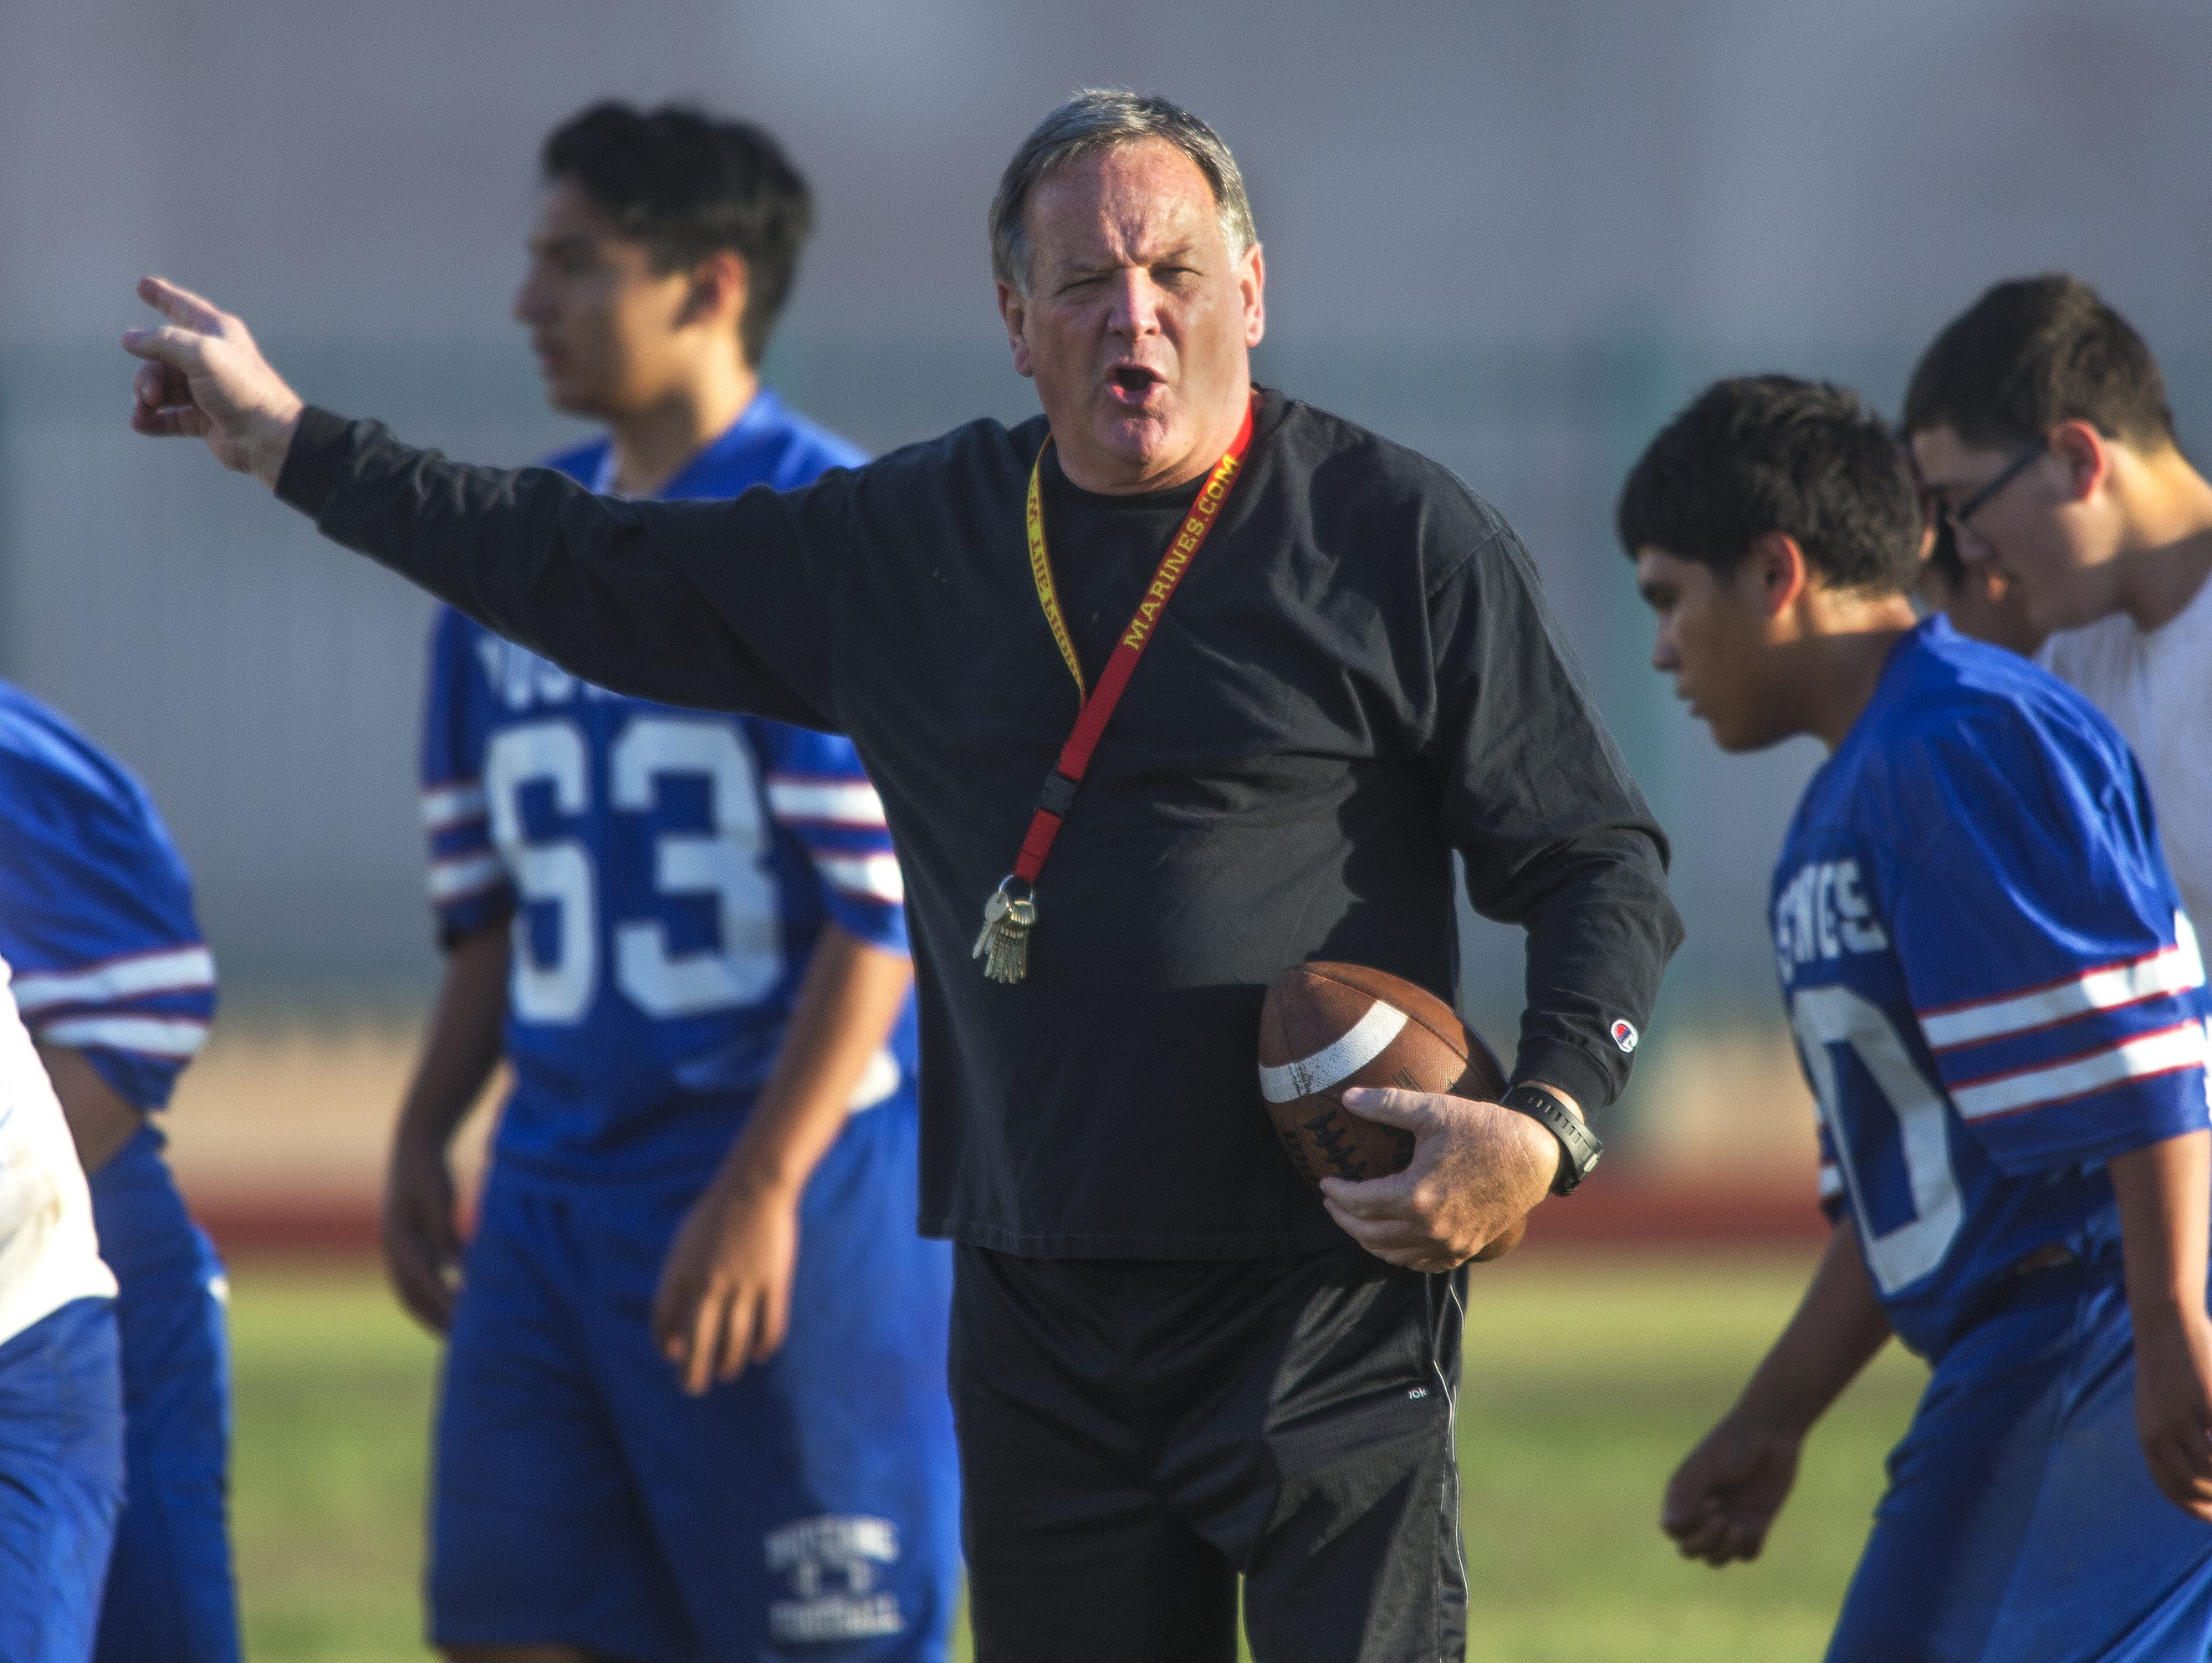 North High School head football coach Bernie Busken gives instructions during practice at North High School early Wednesday morning, May 6, 2015.